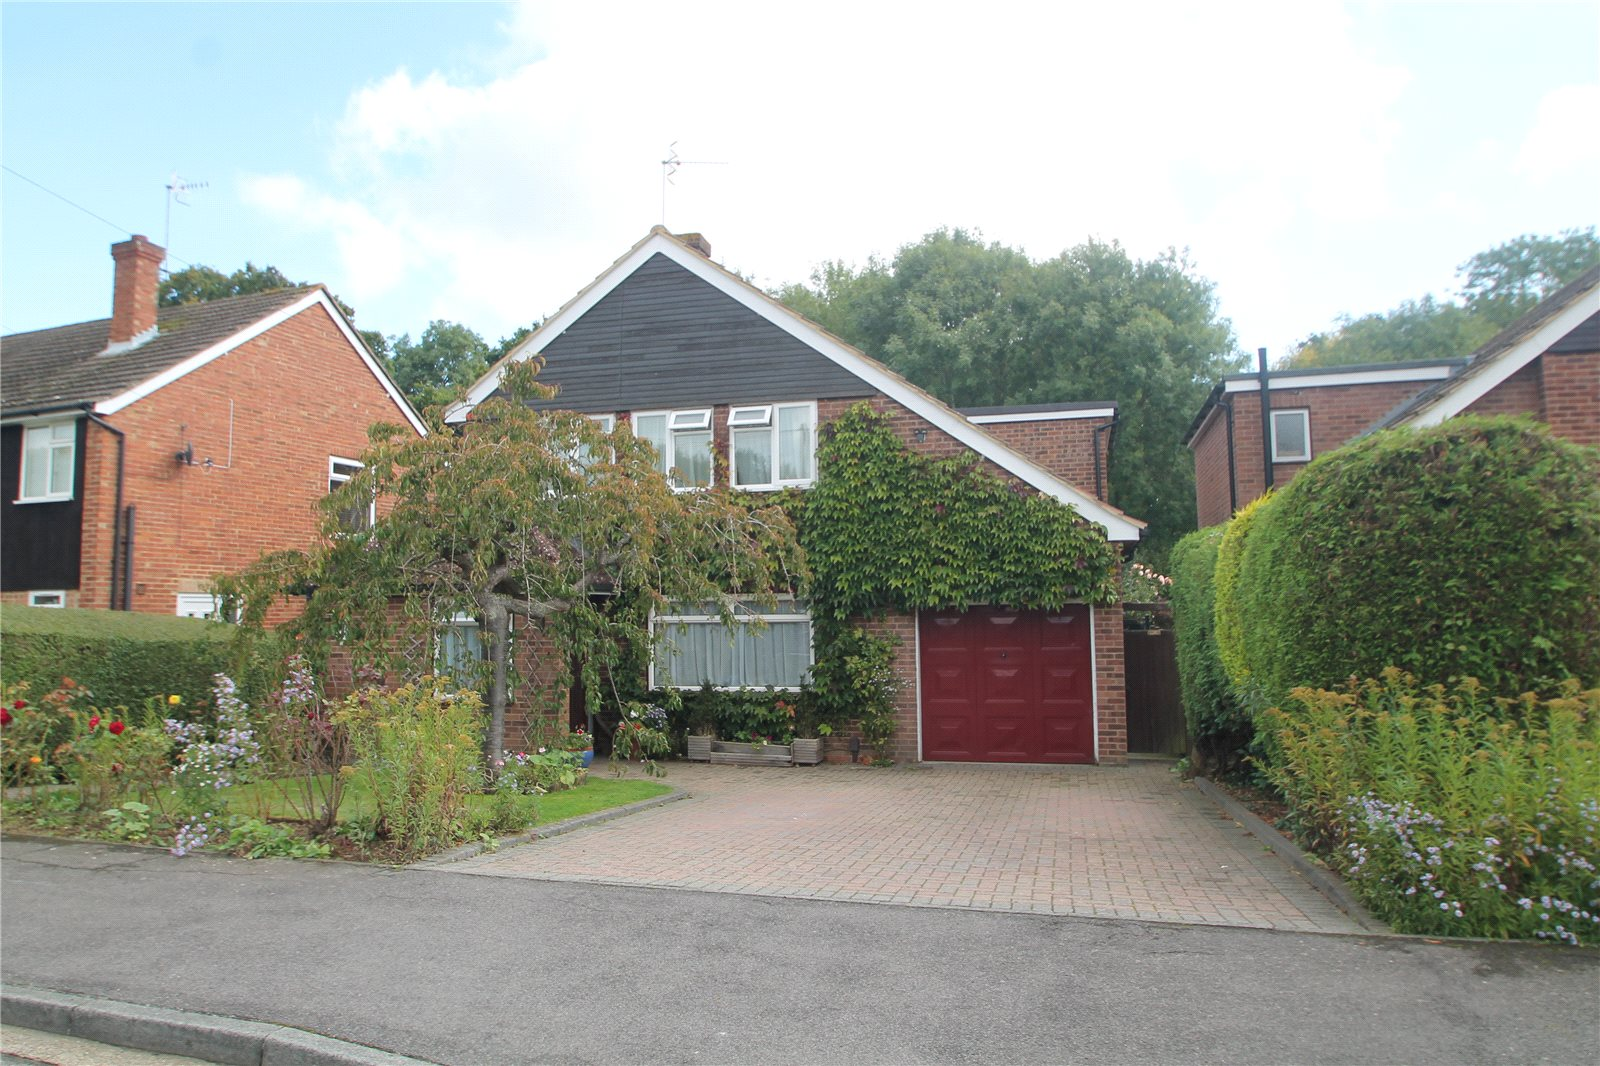 4 Bedrooms Detached House for sale in Hopgarden Road Tonbridge TN10